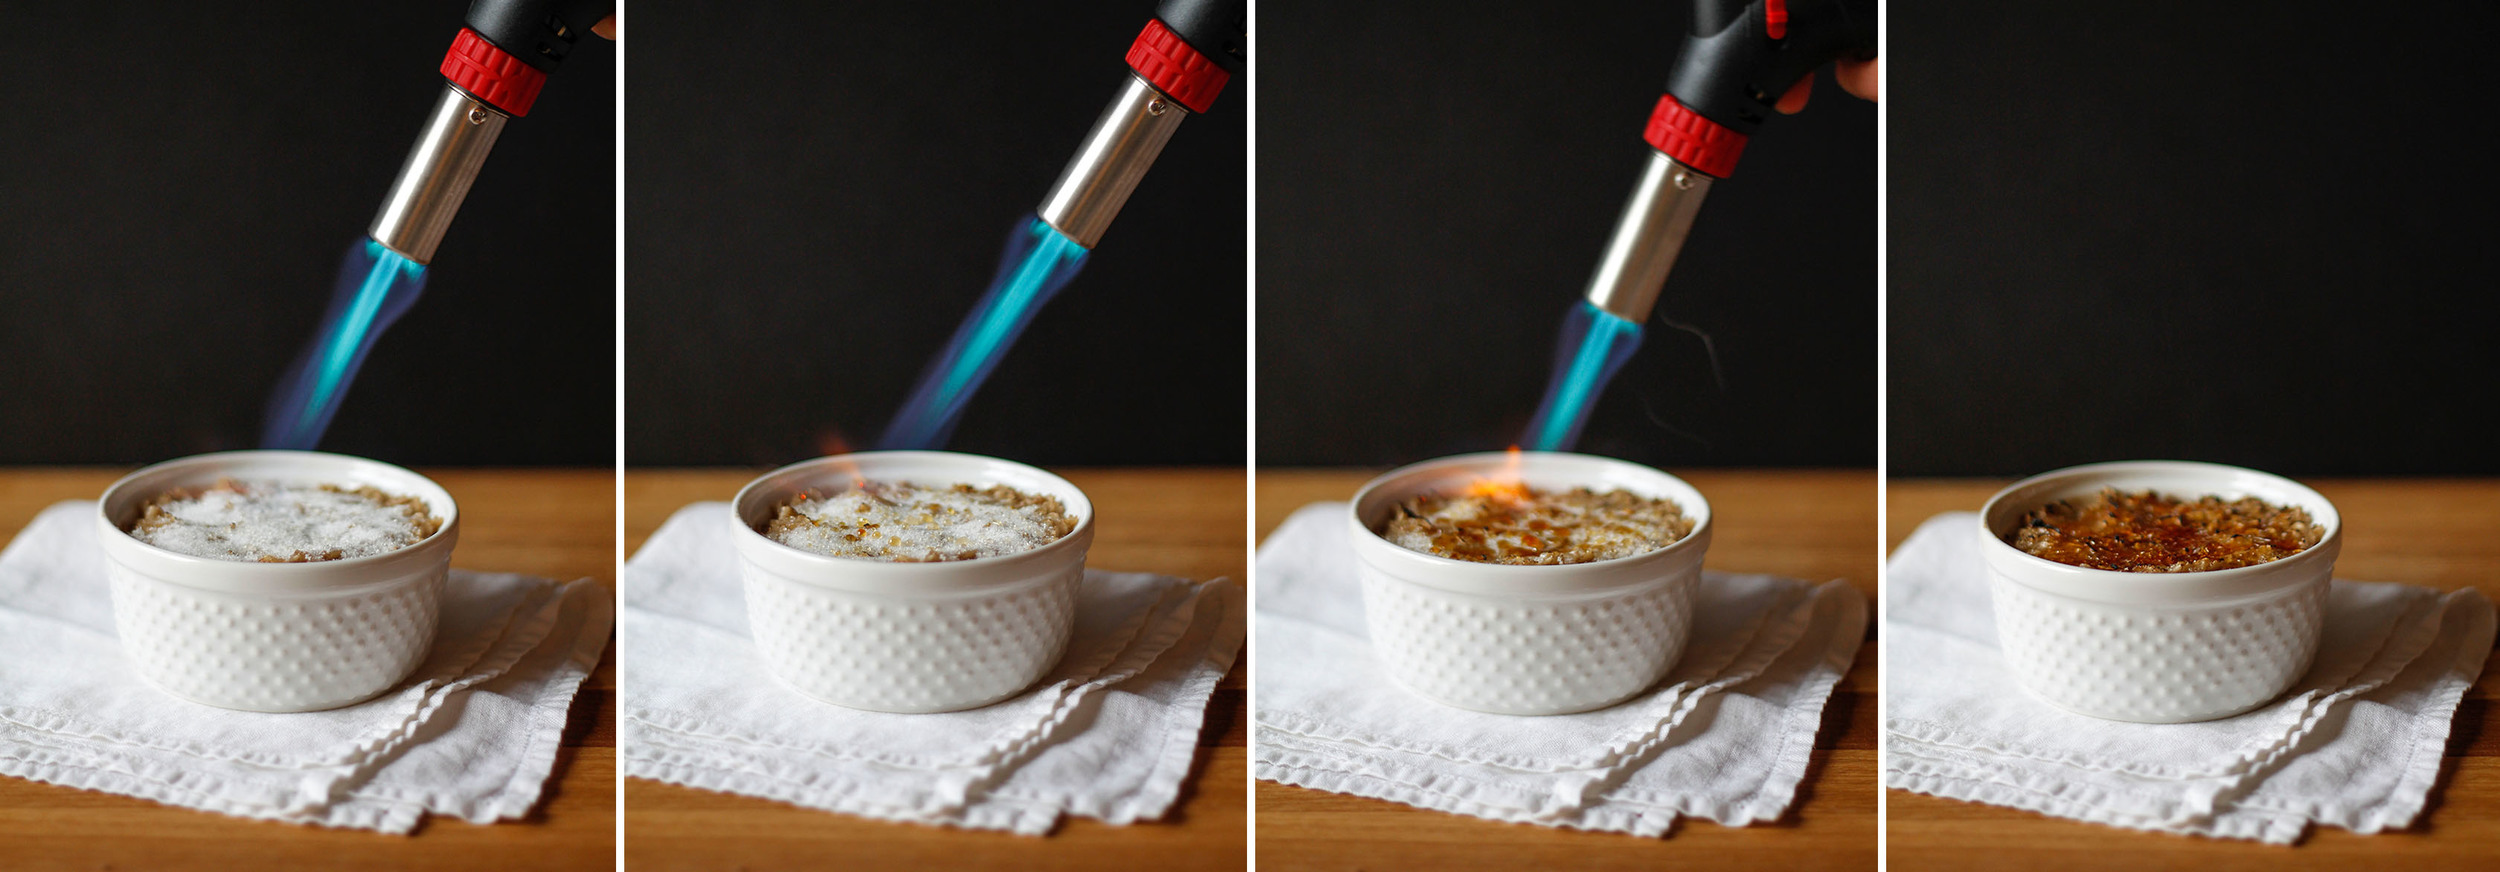 torching the oatmeal | roux studio